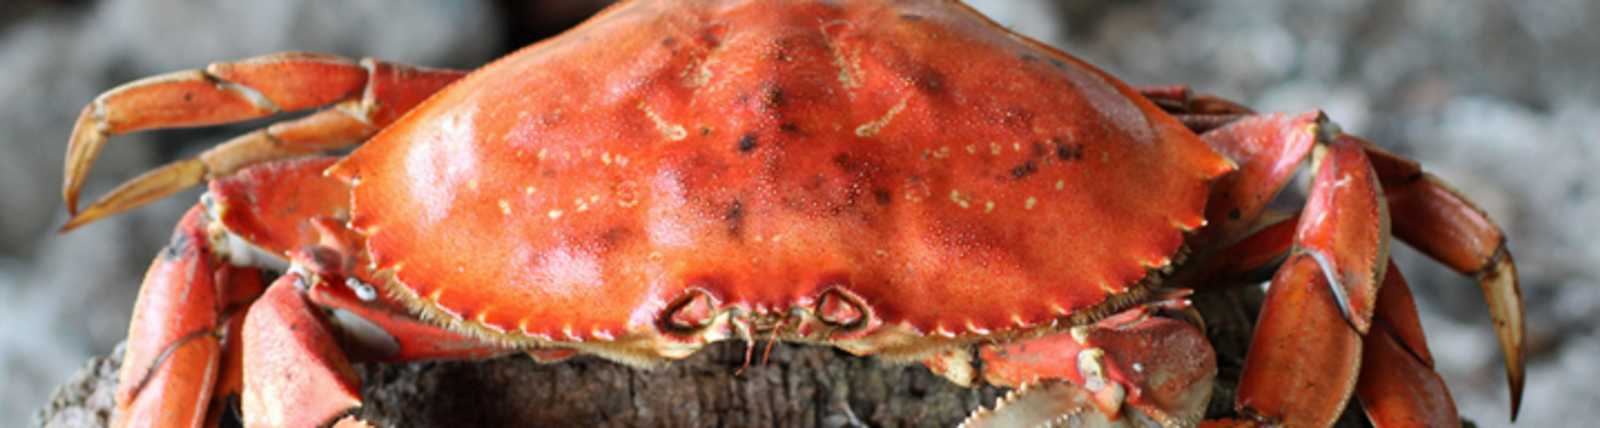 Cooked Whole Dungeness Crab on Rocks by Celeste Stubner